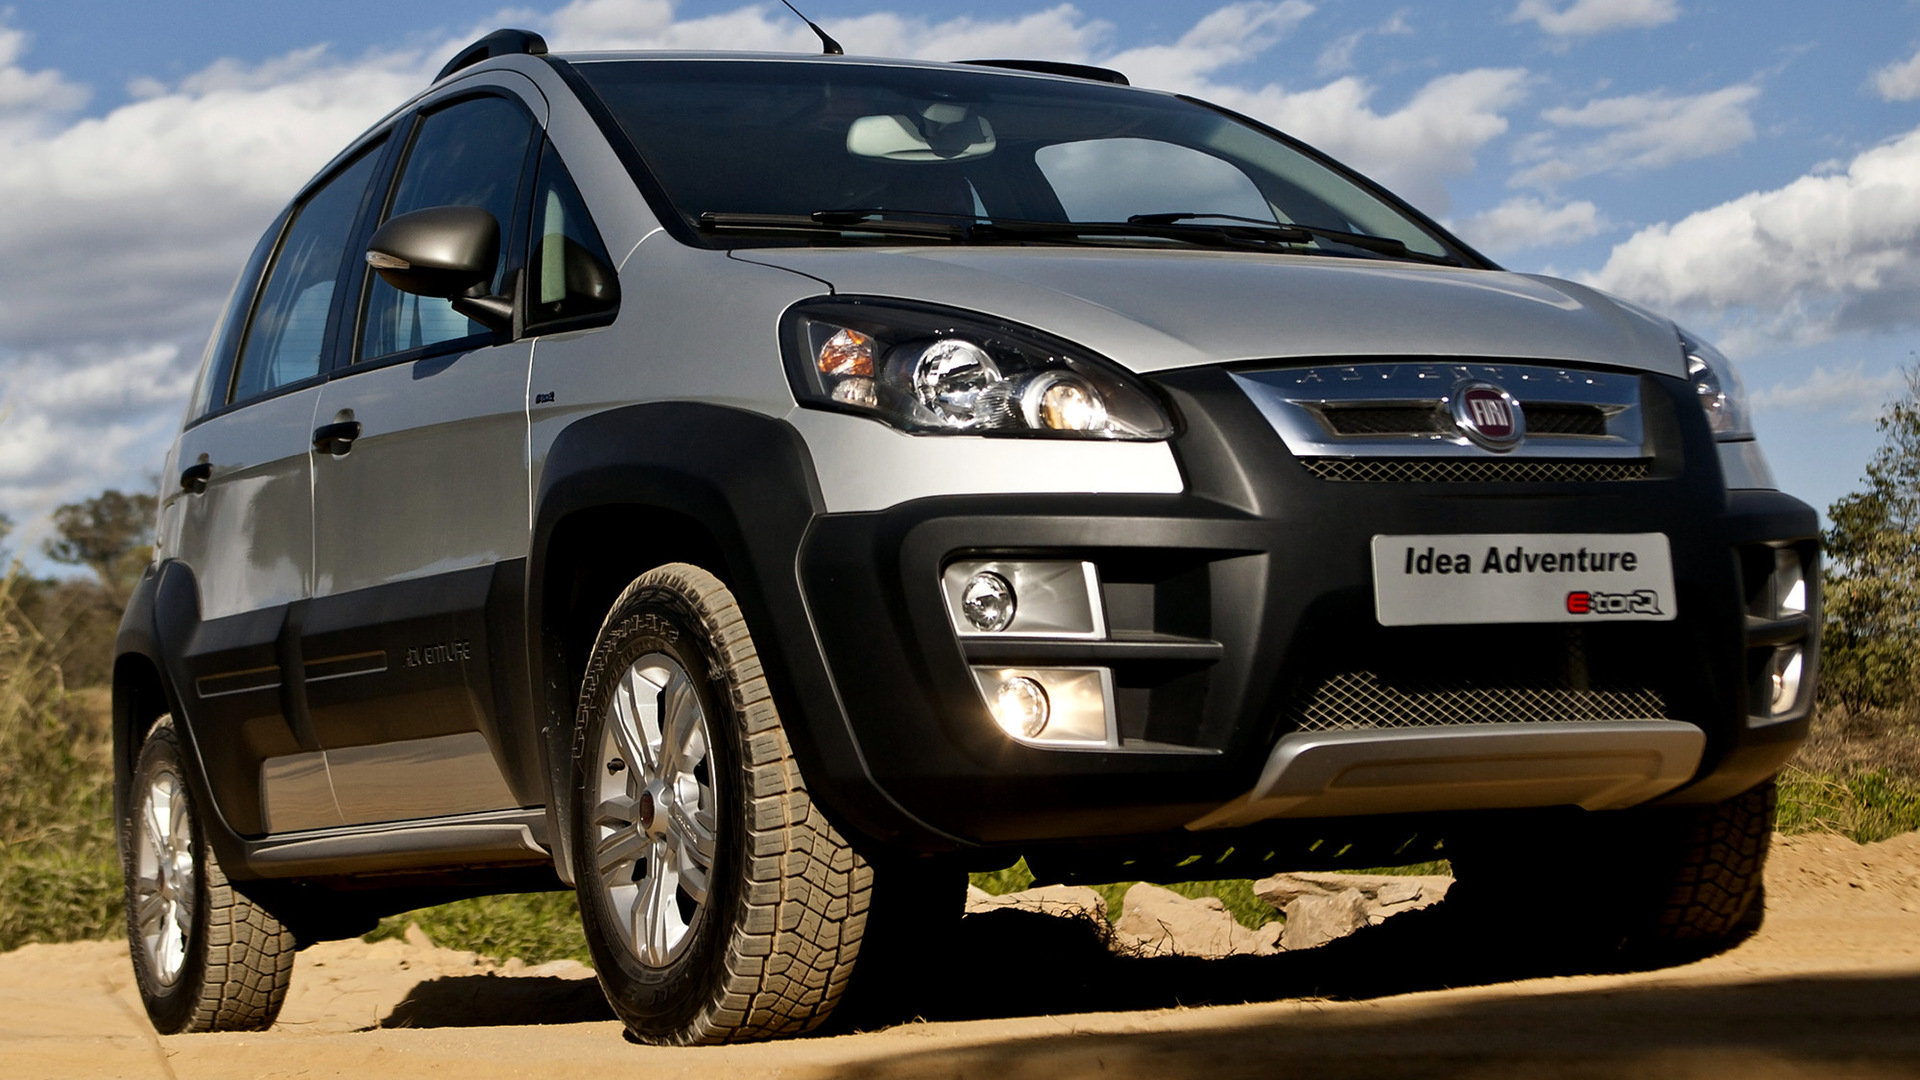 Fiat idea adventure 2010 wallpapers and hd images car for Paragolpe delantero fiat idea adventure